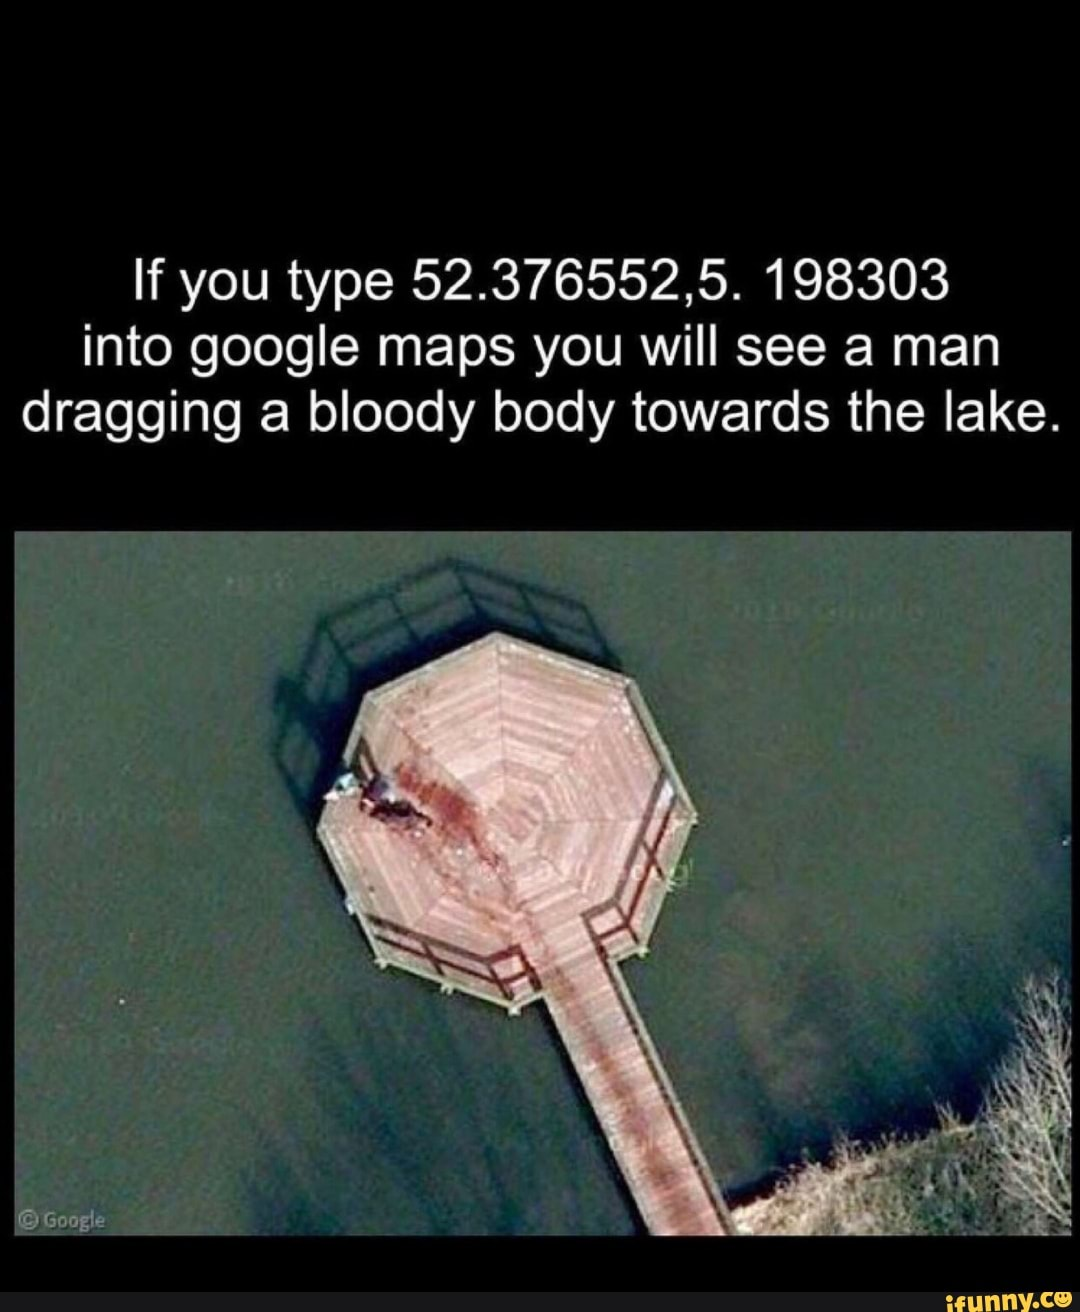 If you type 52.376552,5. 198303 into google maps you will ... Man Dragging In Google Maps on icons man, netflix man, apple man, google camera man, blue tooth man, google street view man, google pack man, google map pin, google earth man, google map person, google classic man, google street view icon,